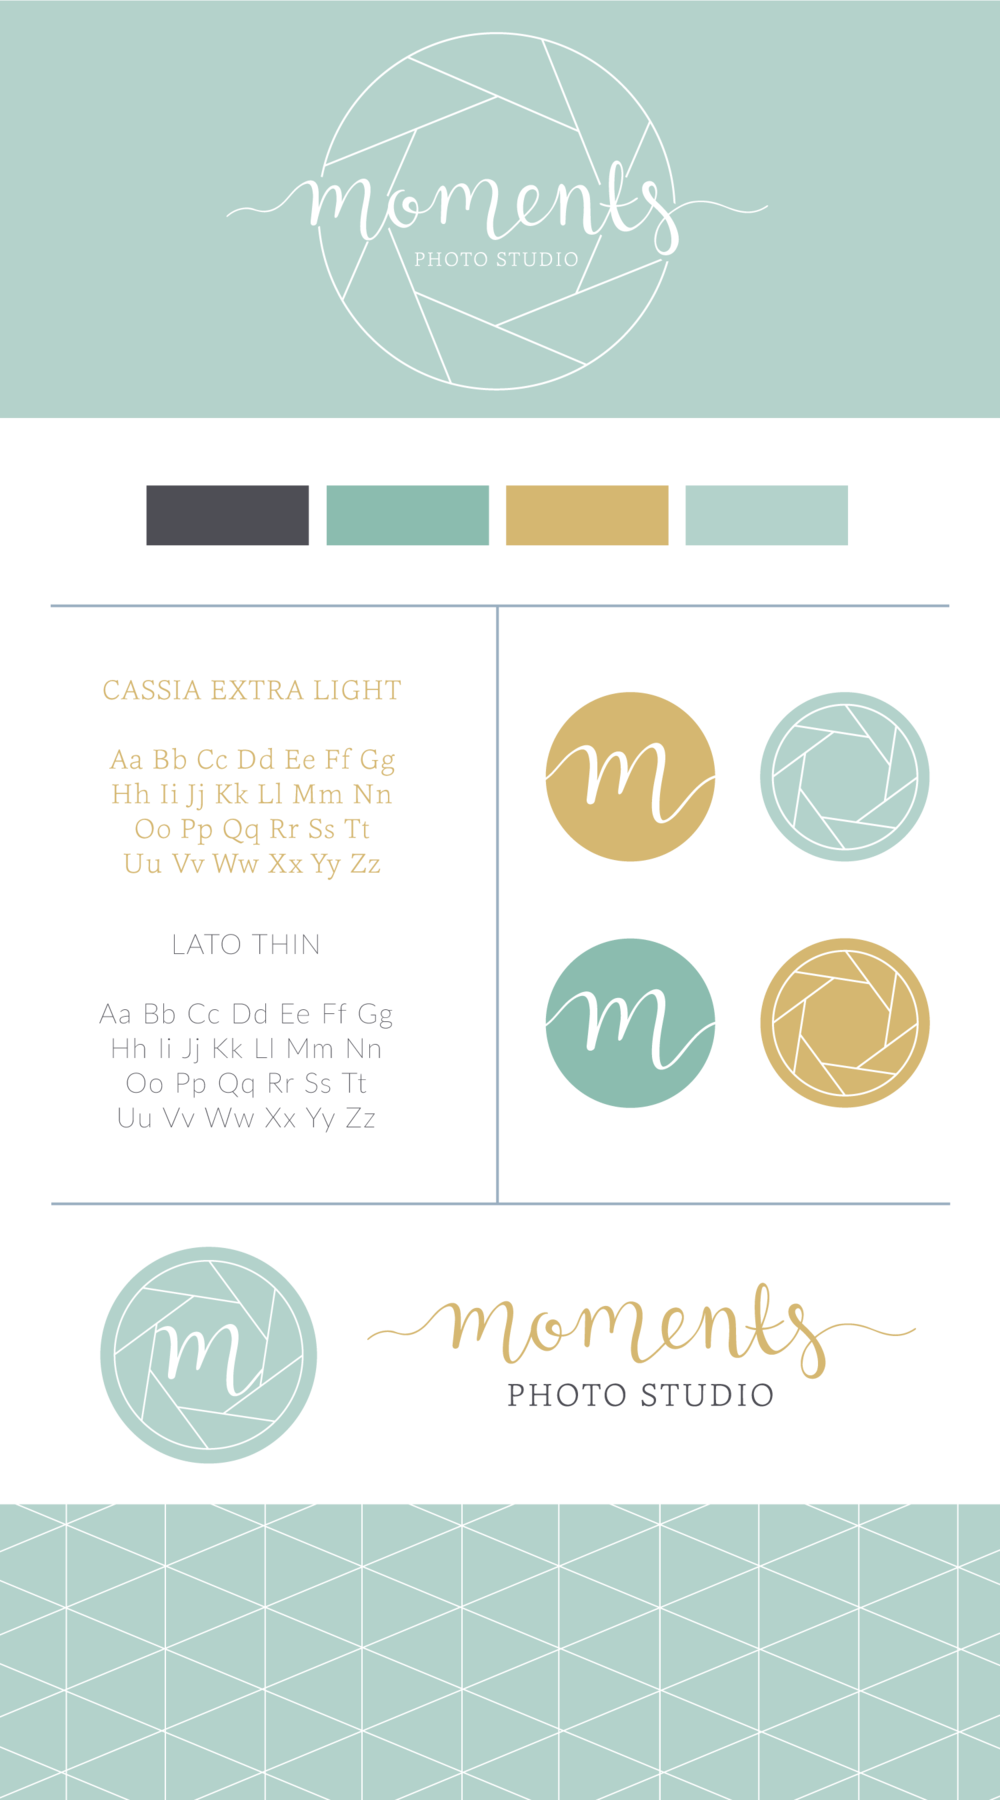 Moments Photo Studio mood board Logo & Branding Design Bea & Bloom Creative Design Studio